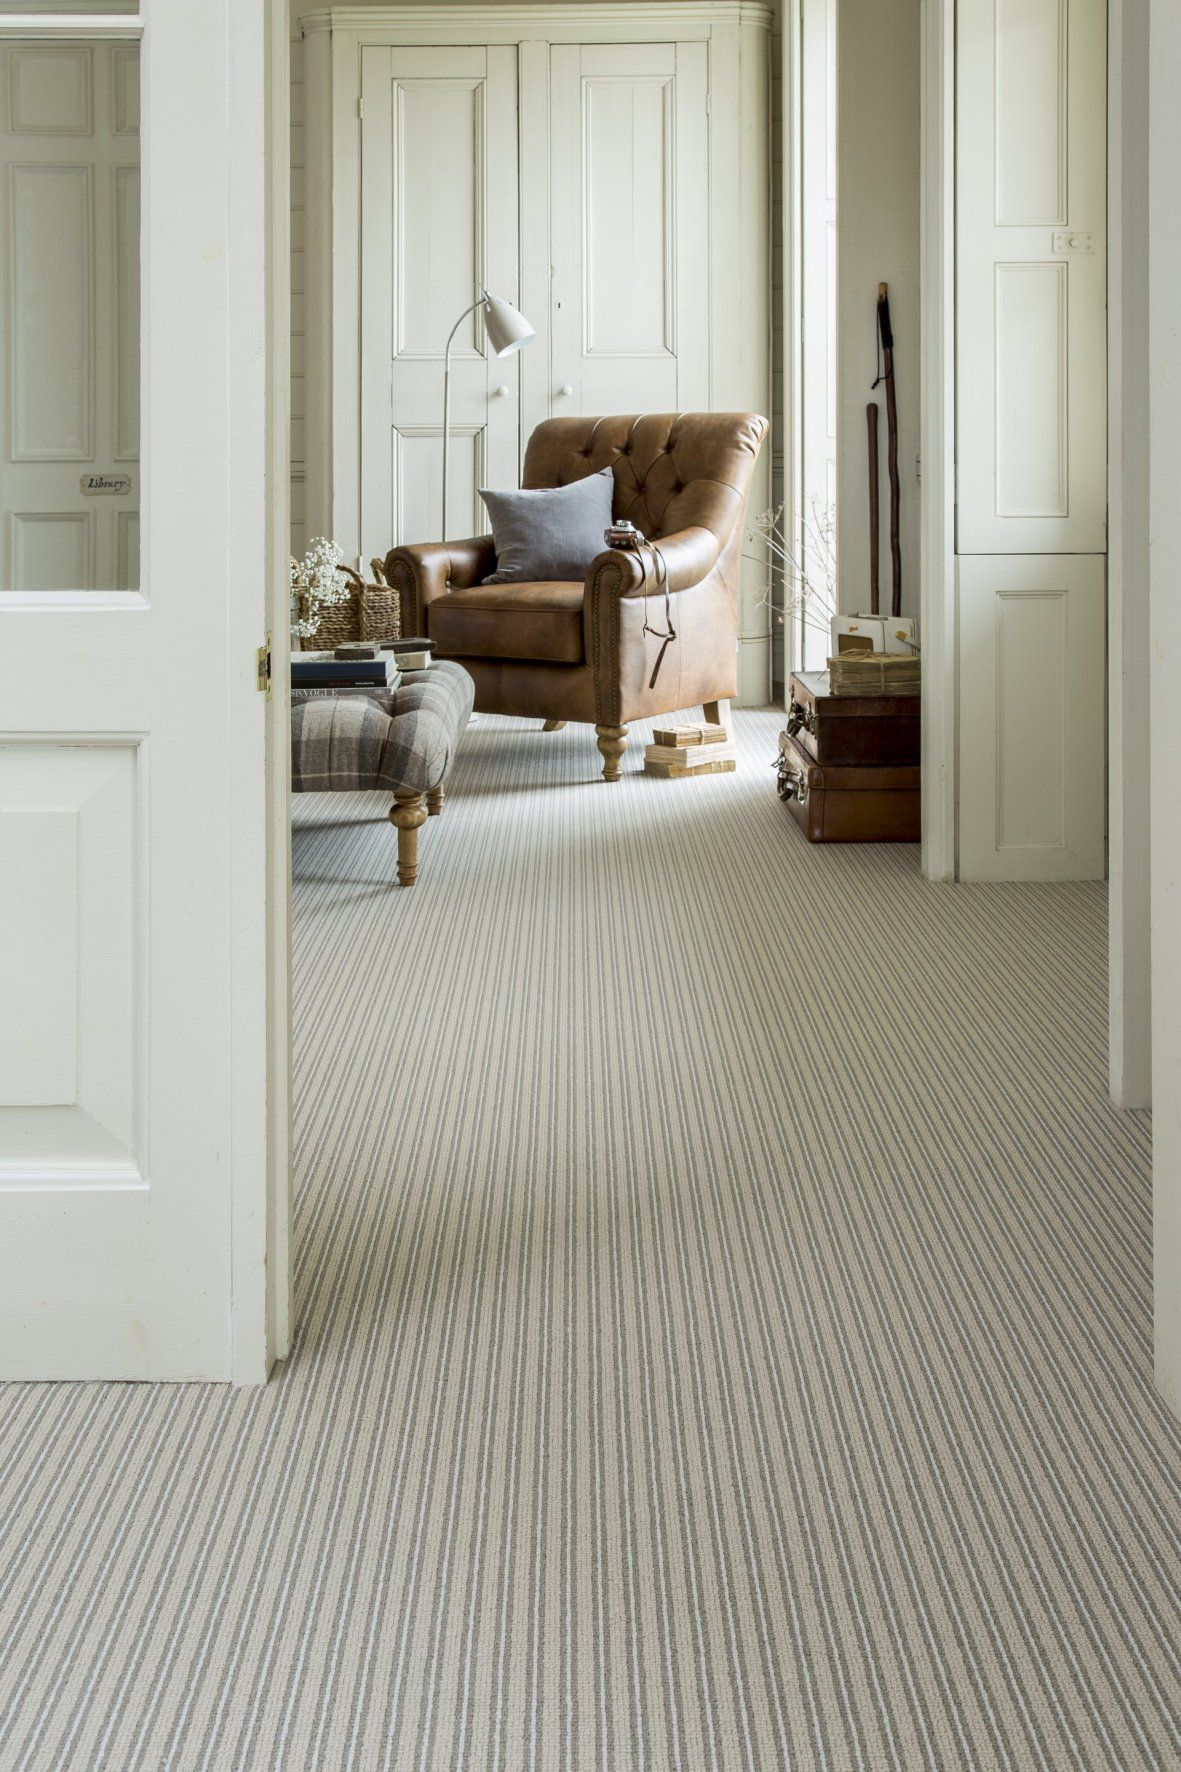 Wool or polypropylene carpet? The pros and cons revealed